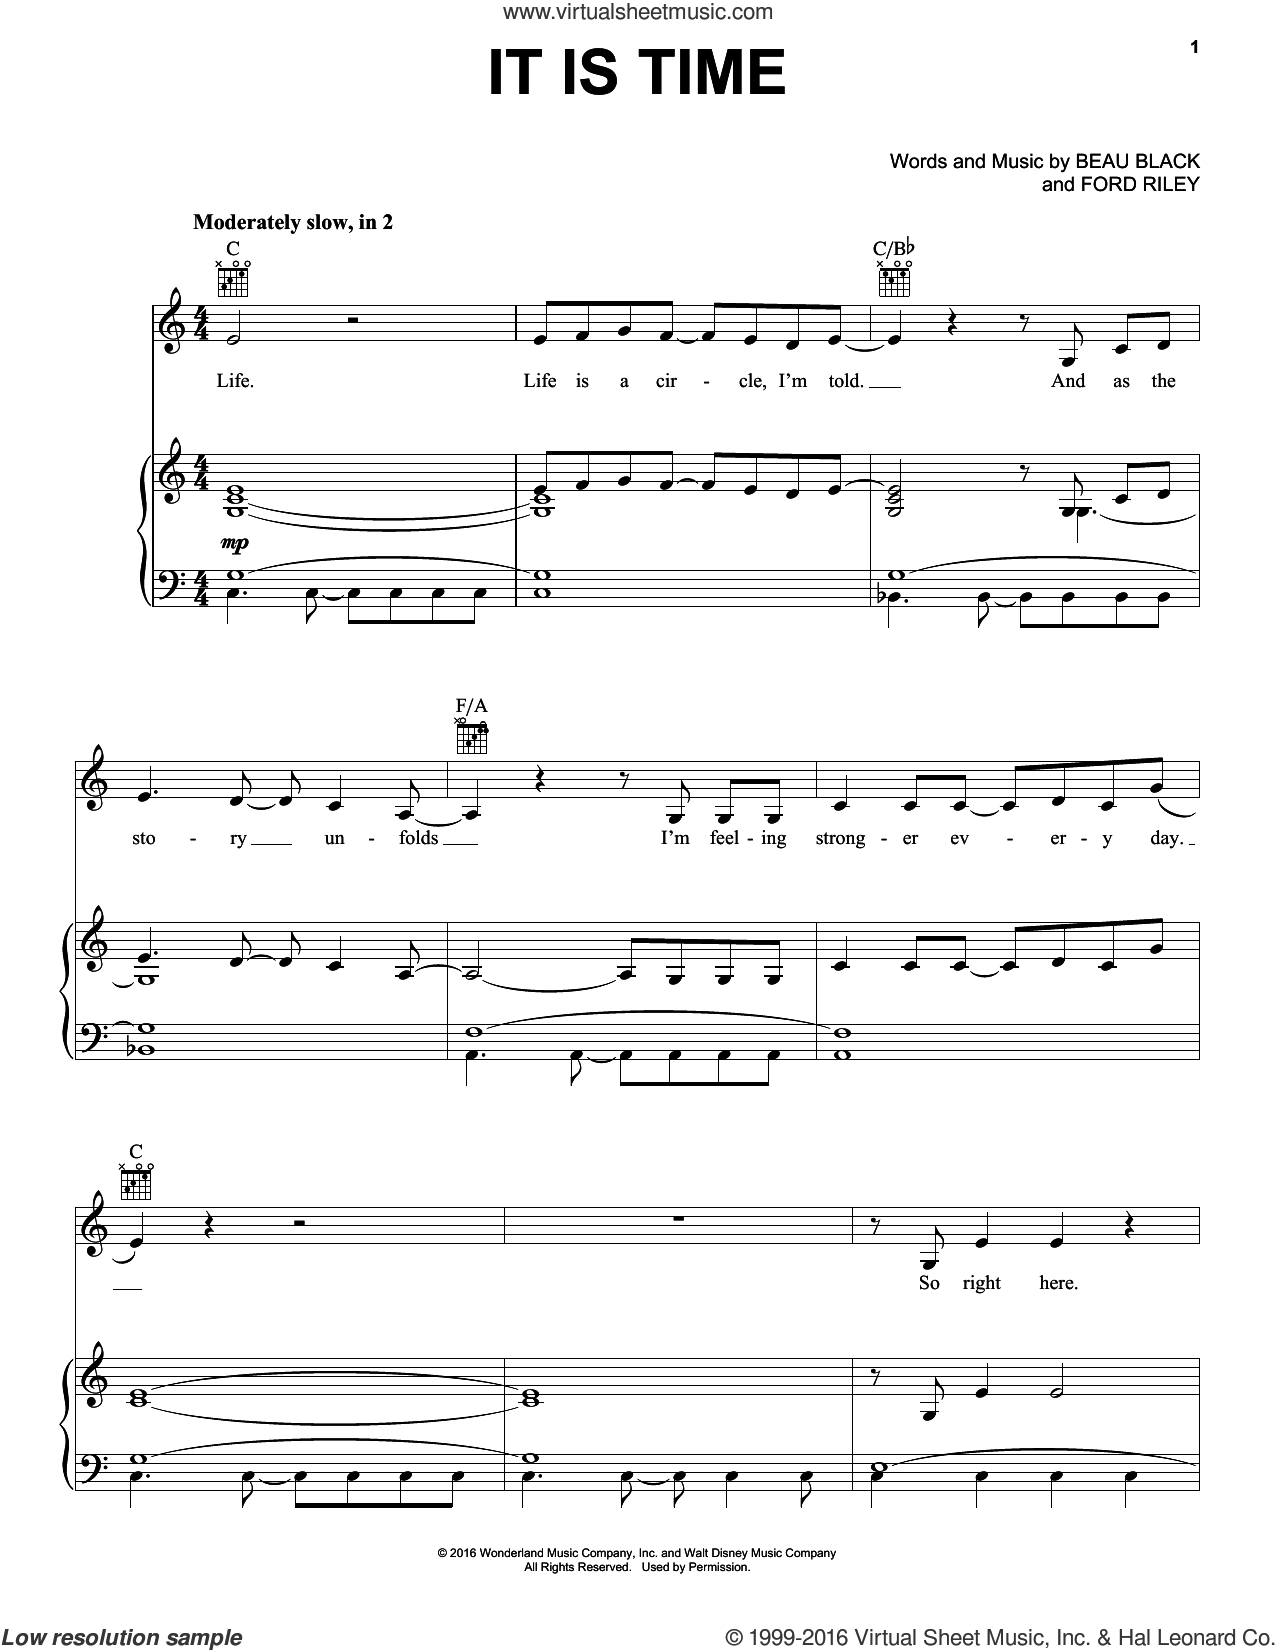 It Is Time sheet music for voice, piano or guitar by Ford Riley and Beau Black. Score Image Preview.